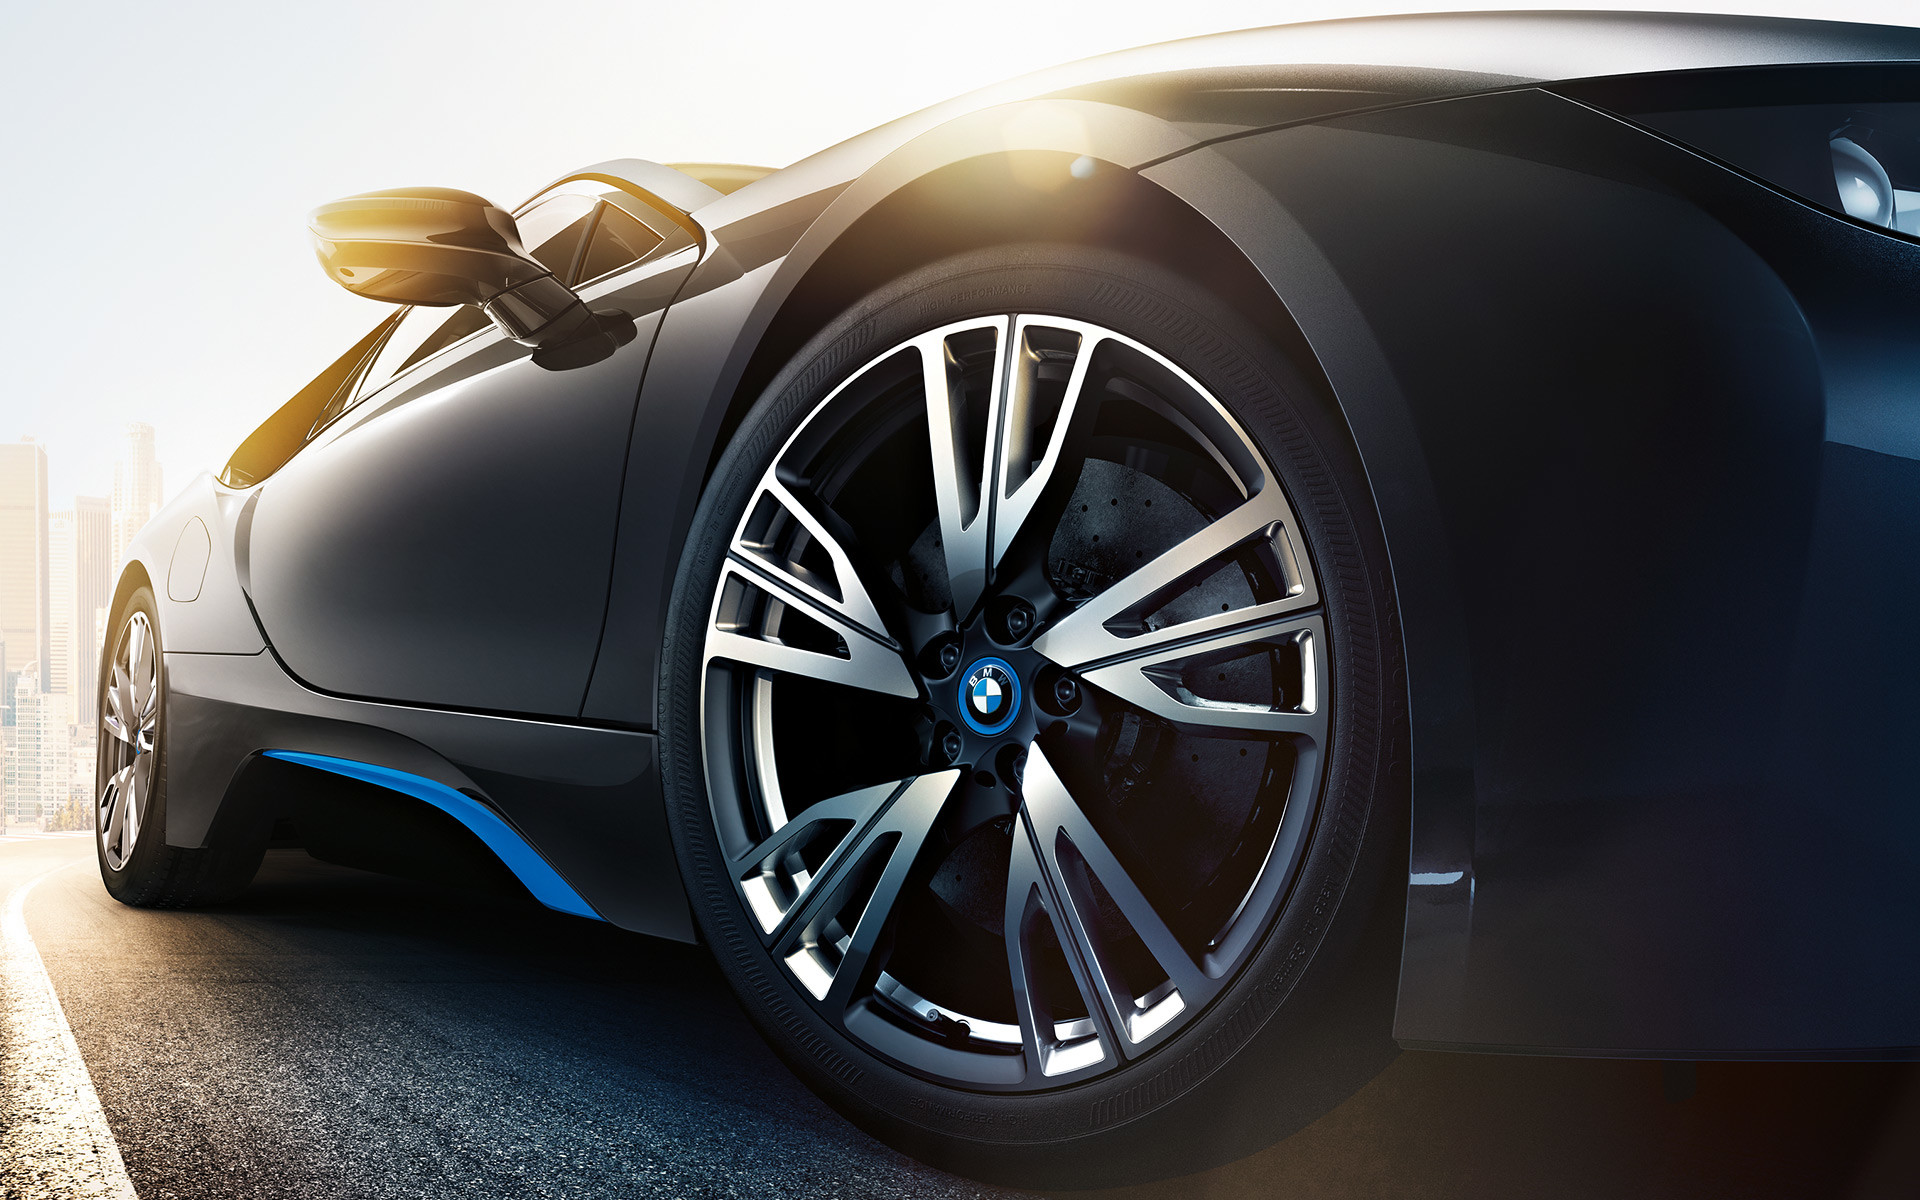 Bmw I8 Wallpaper Desktop 70 Images